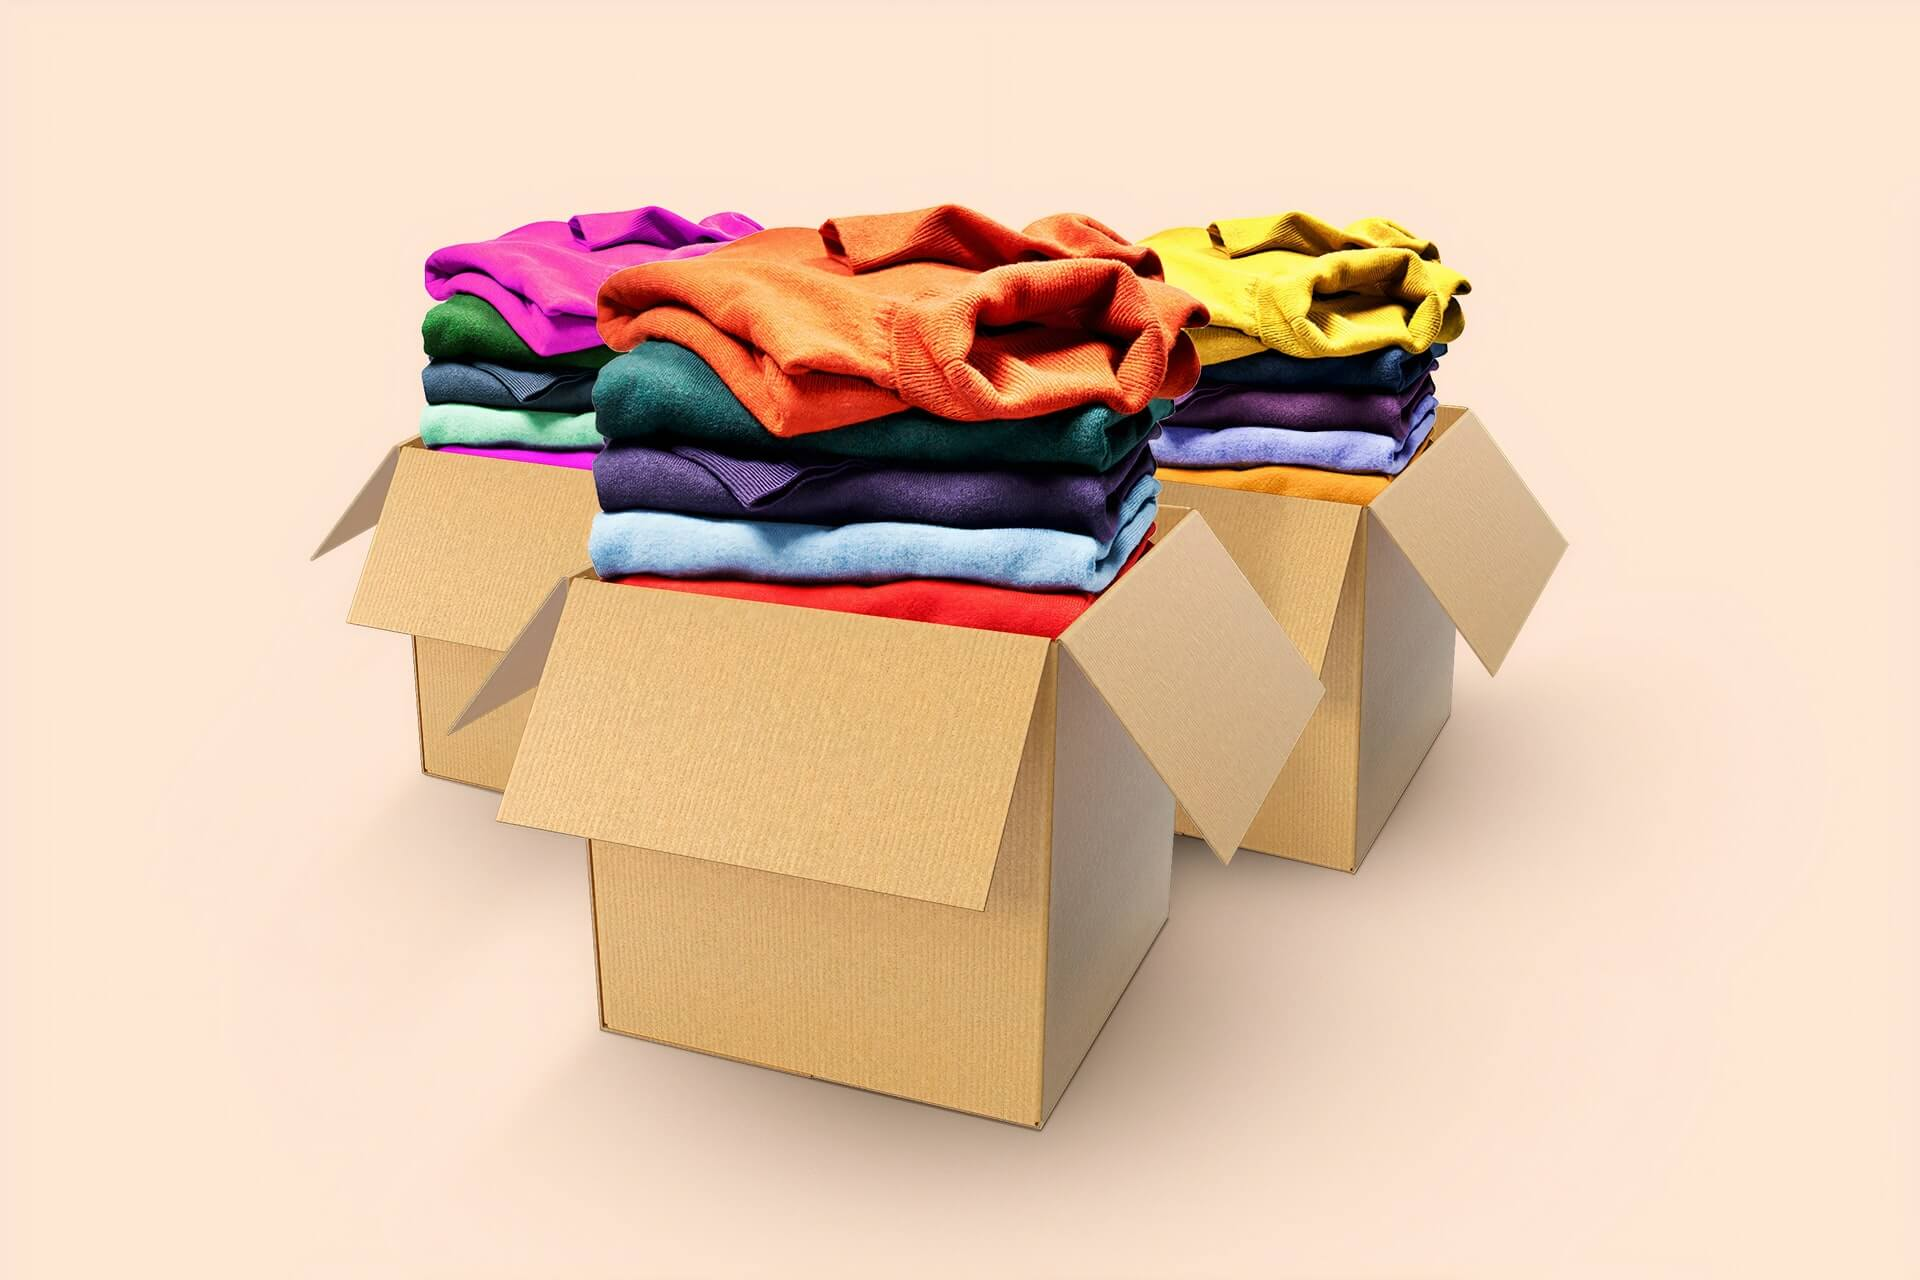 3 cardboard boxes with piles of folded clothes in each